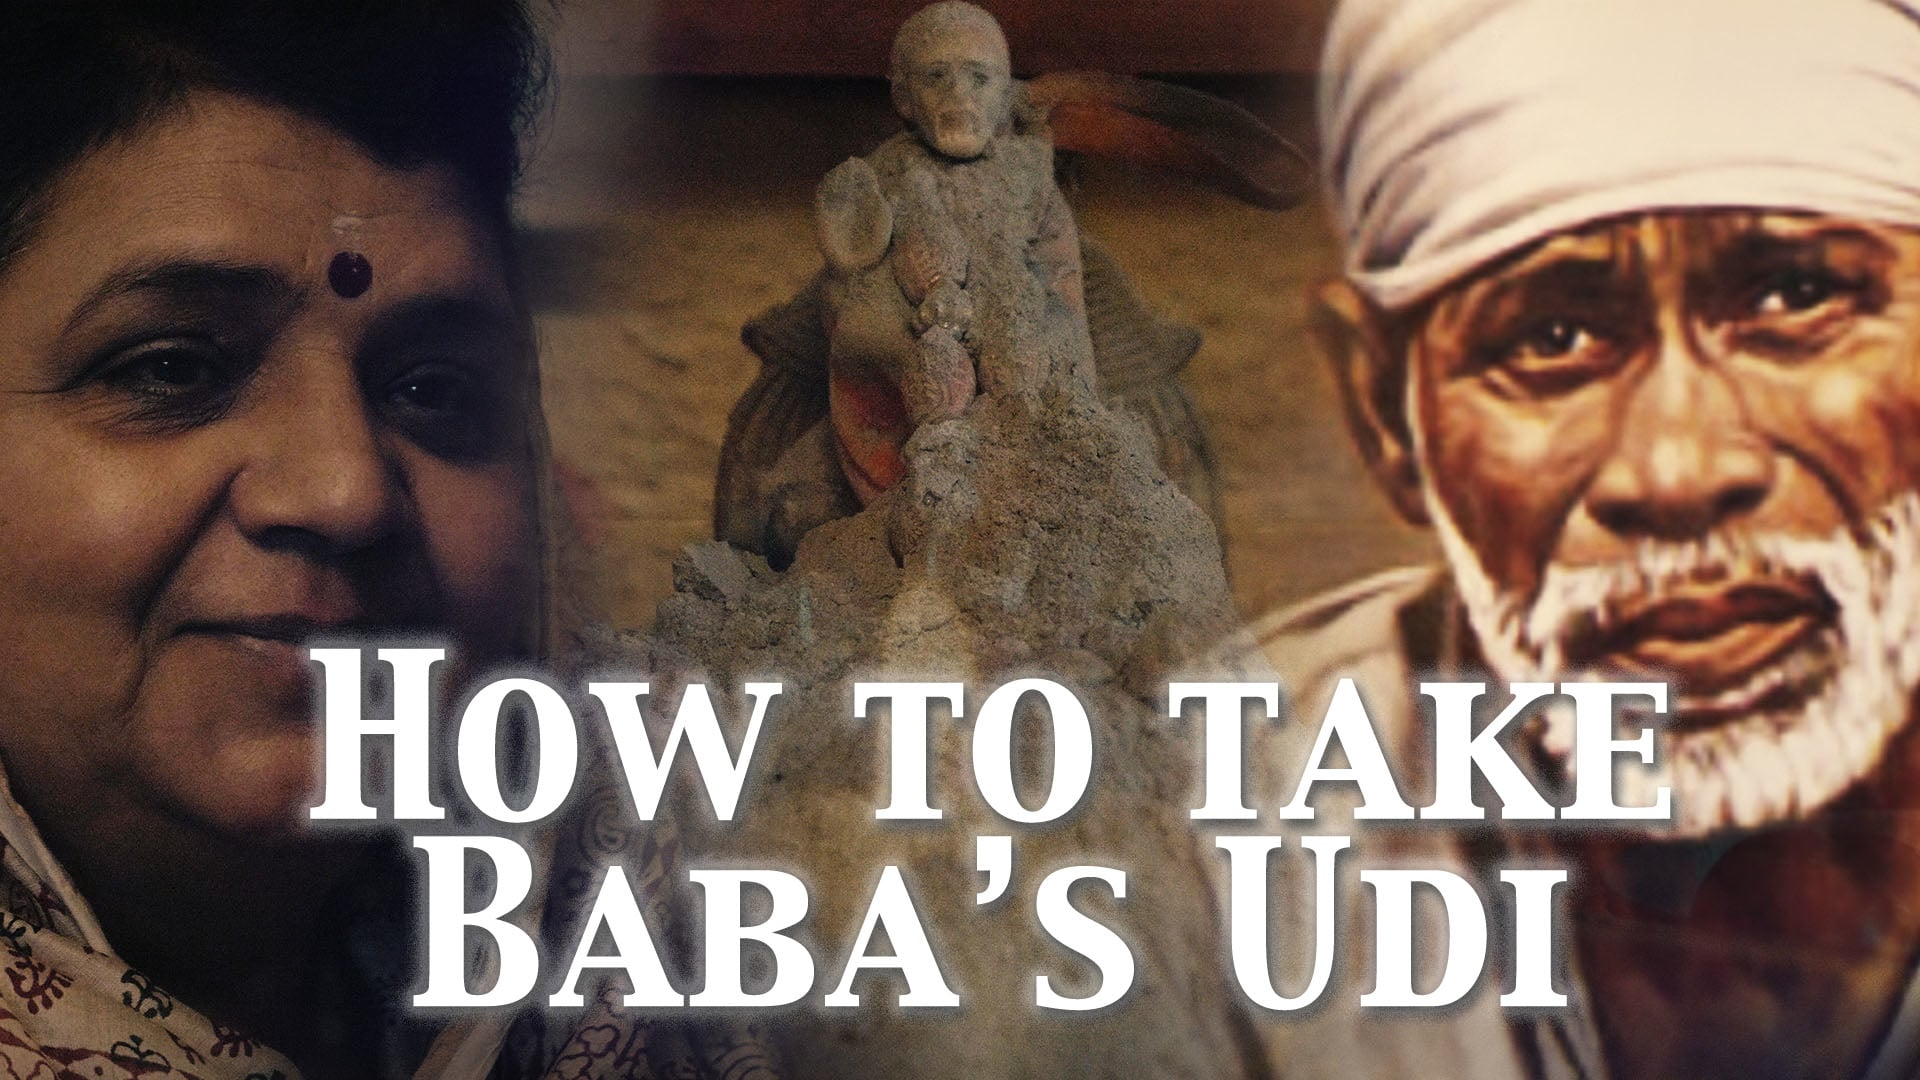 How to take Baba's Udi